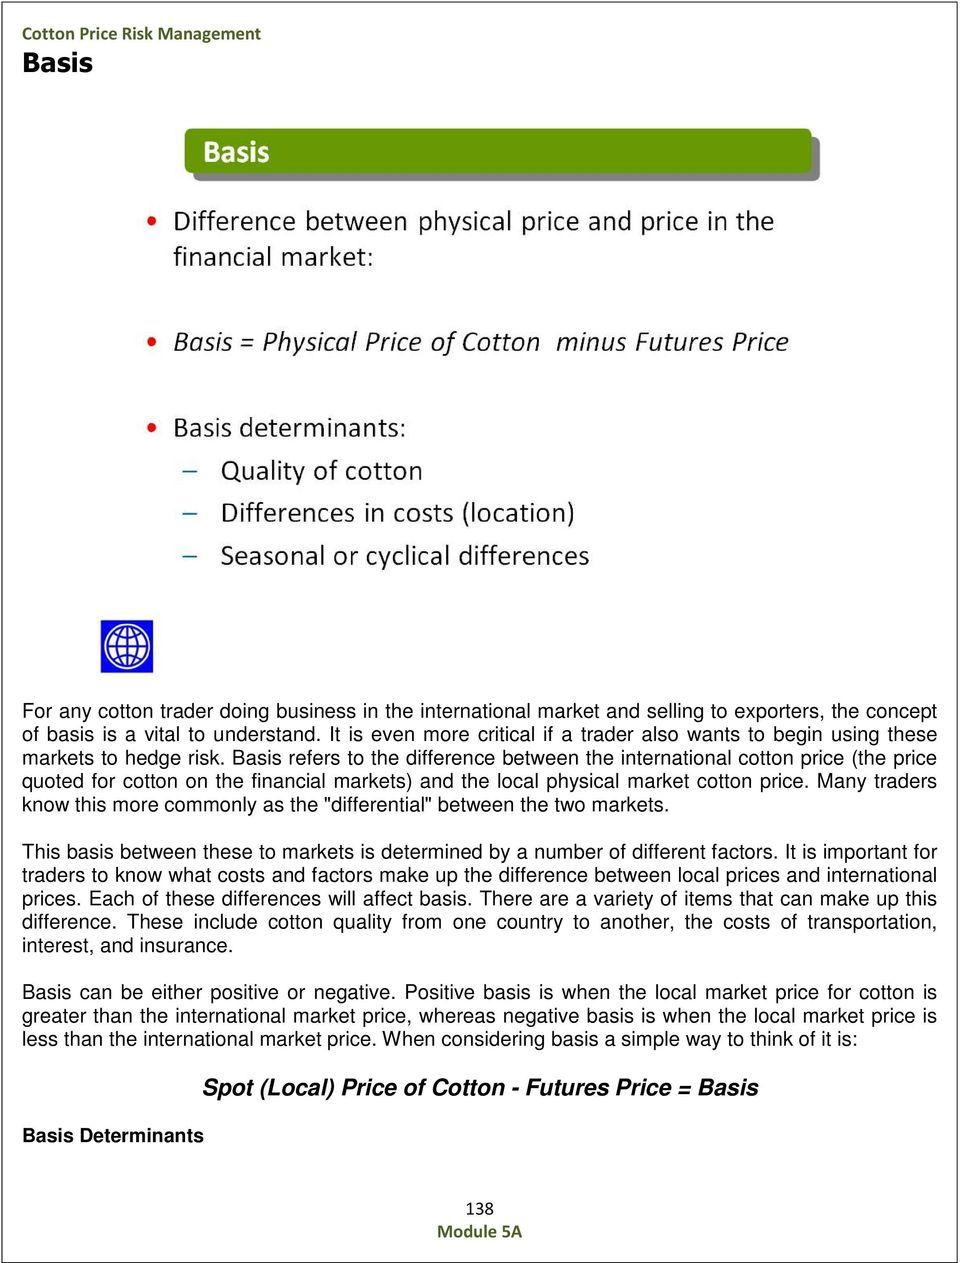 Basis refers to the difference between the international cotton price (the price quoted for cotton on the financial markets) and the local physical market cotton price.